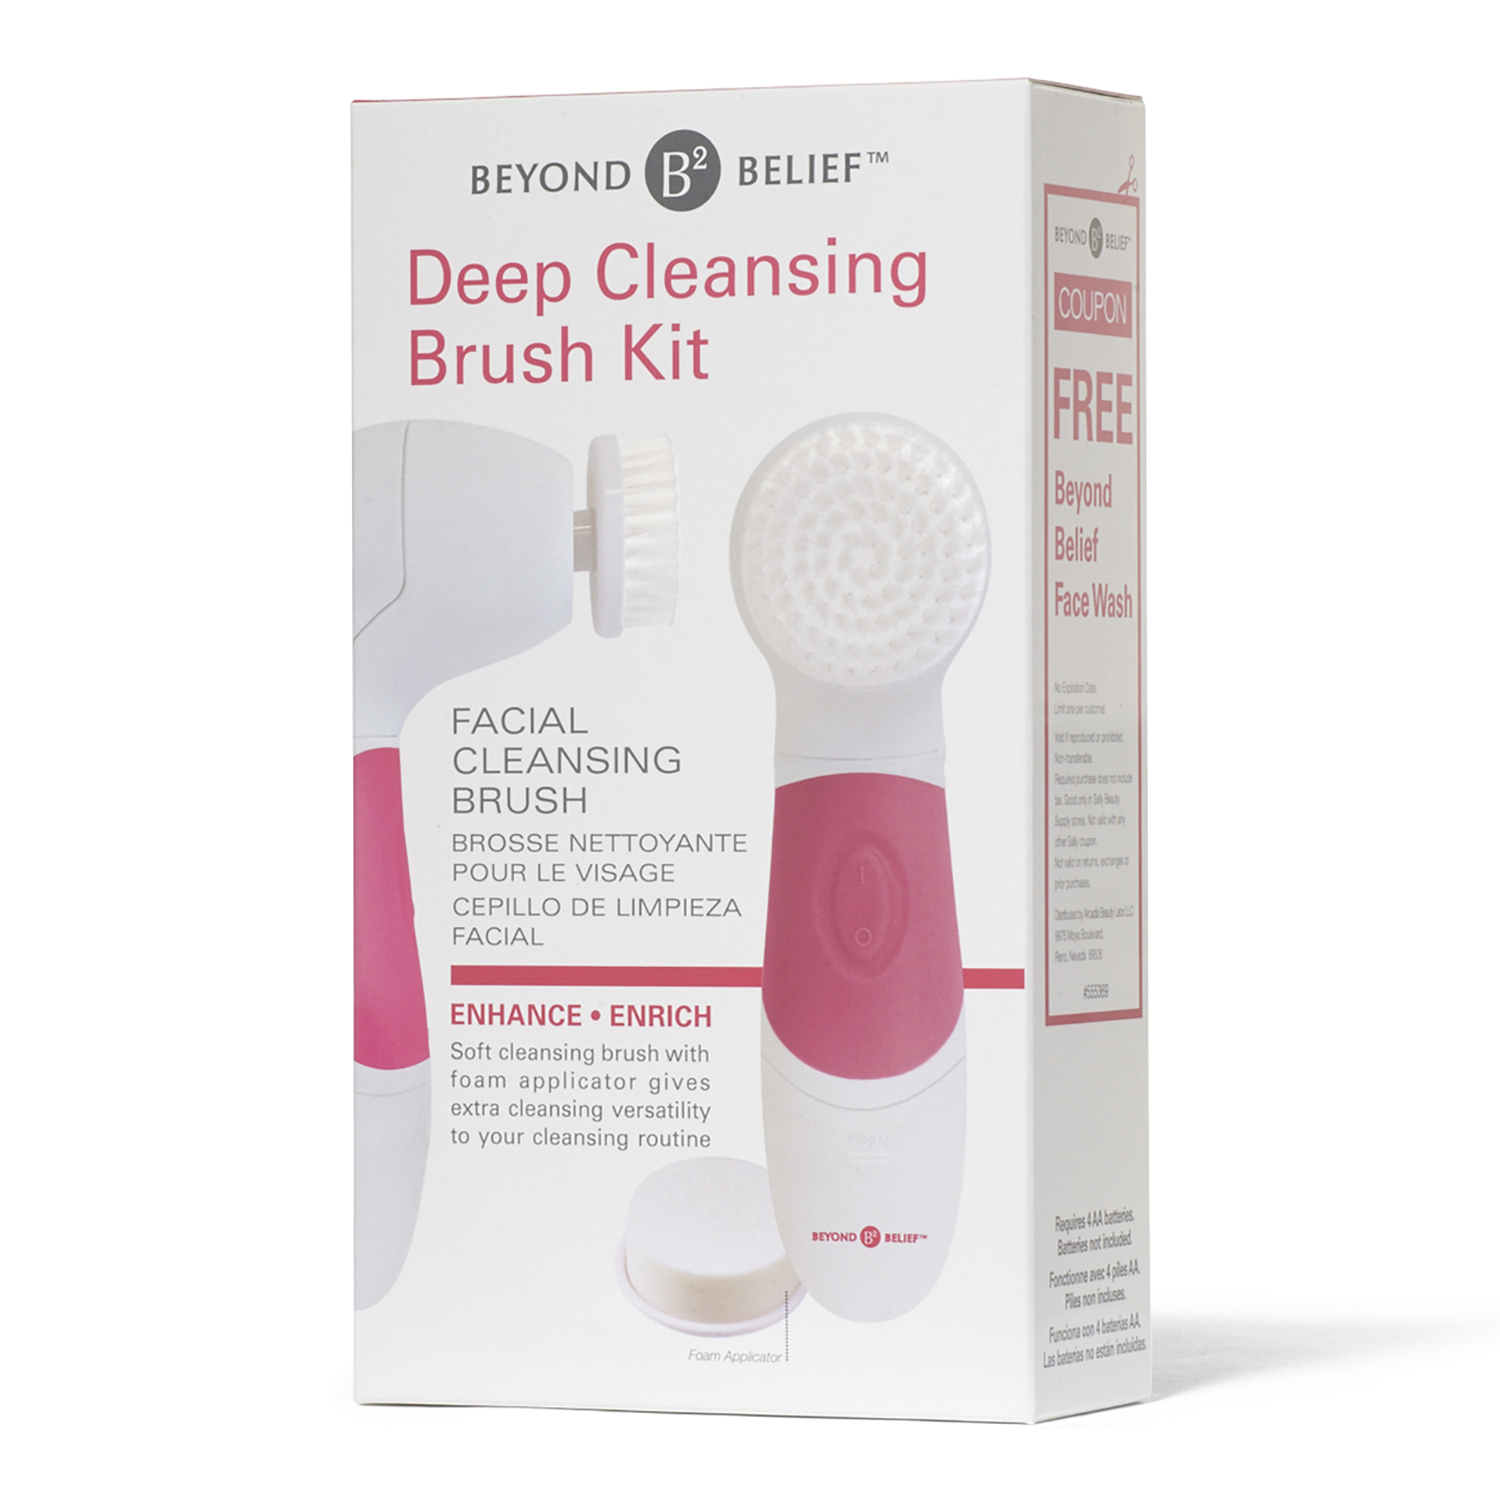 Sally Beauty coupon: Beyond Belief Facial Cleansing Brush | Sally Beauty